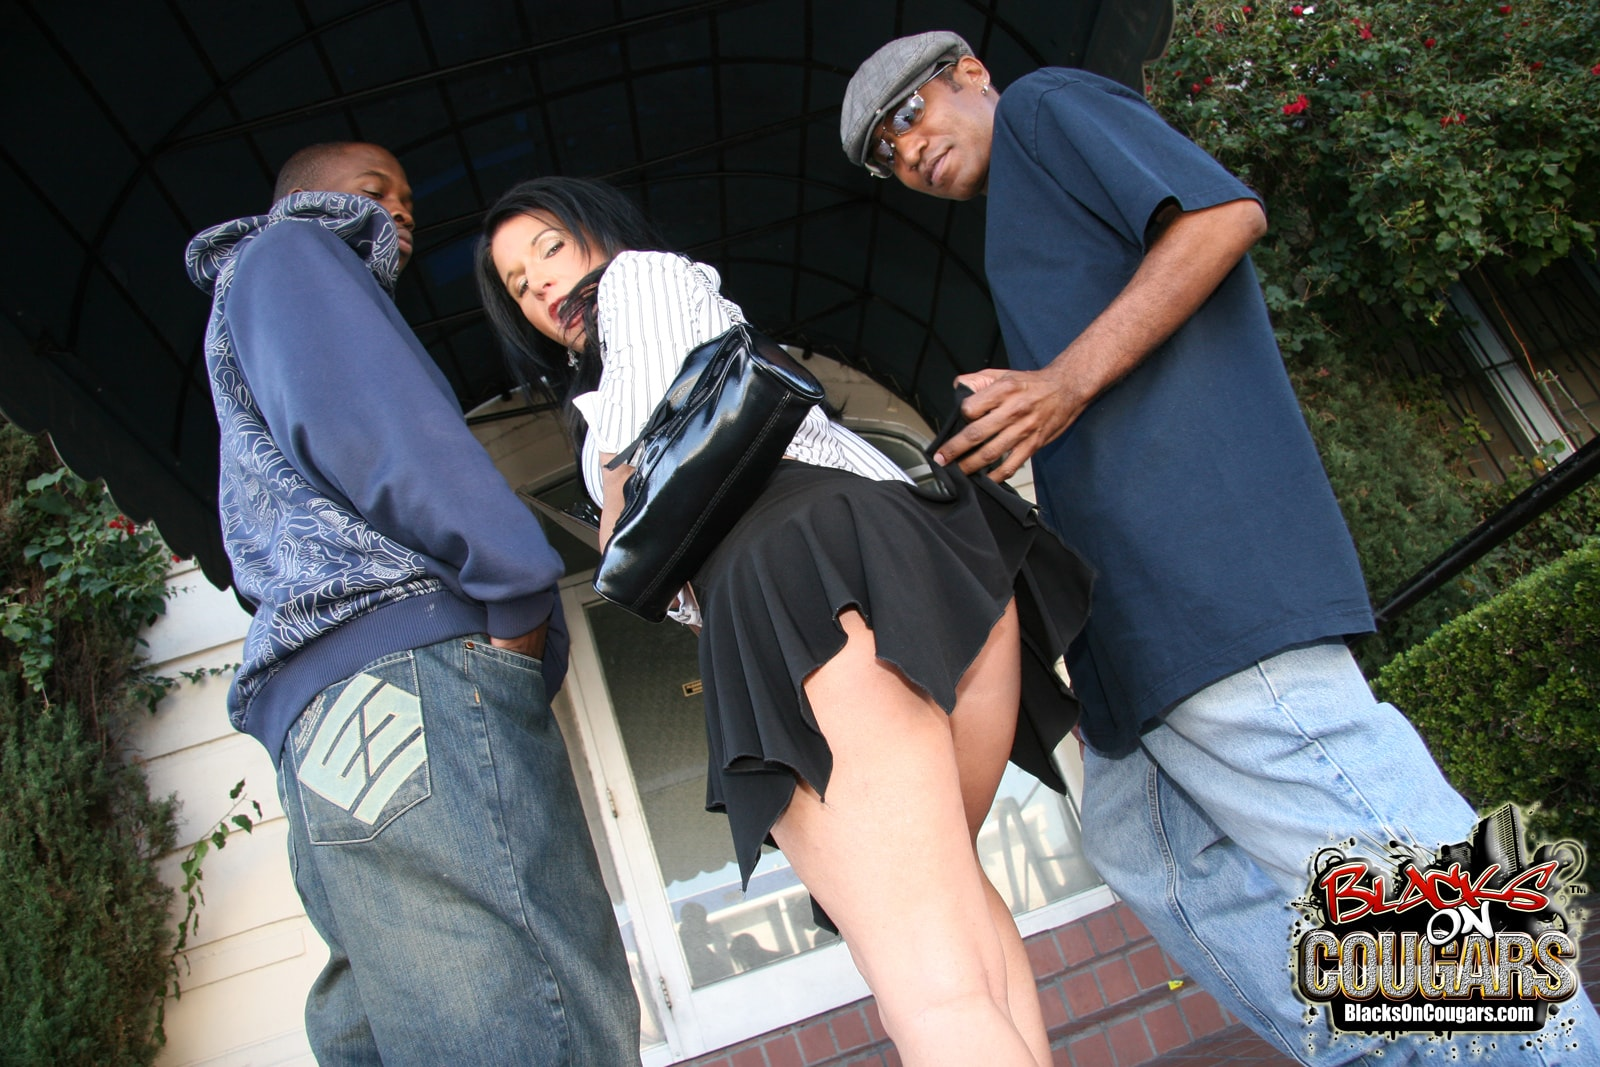 Dogfart '- Blacks On Cougars' starring Kendra Secrets (Photo 4)